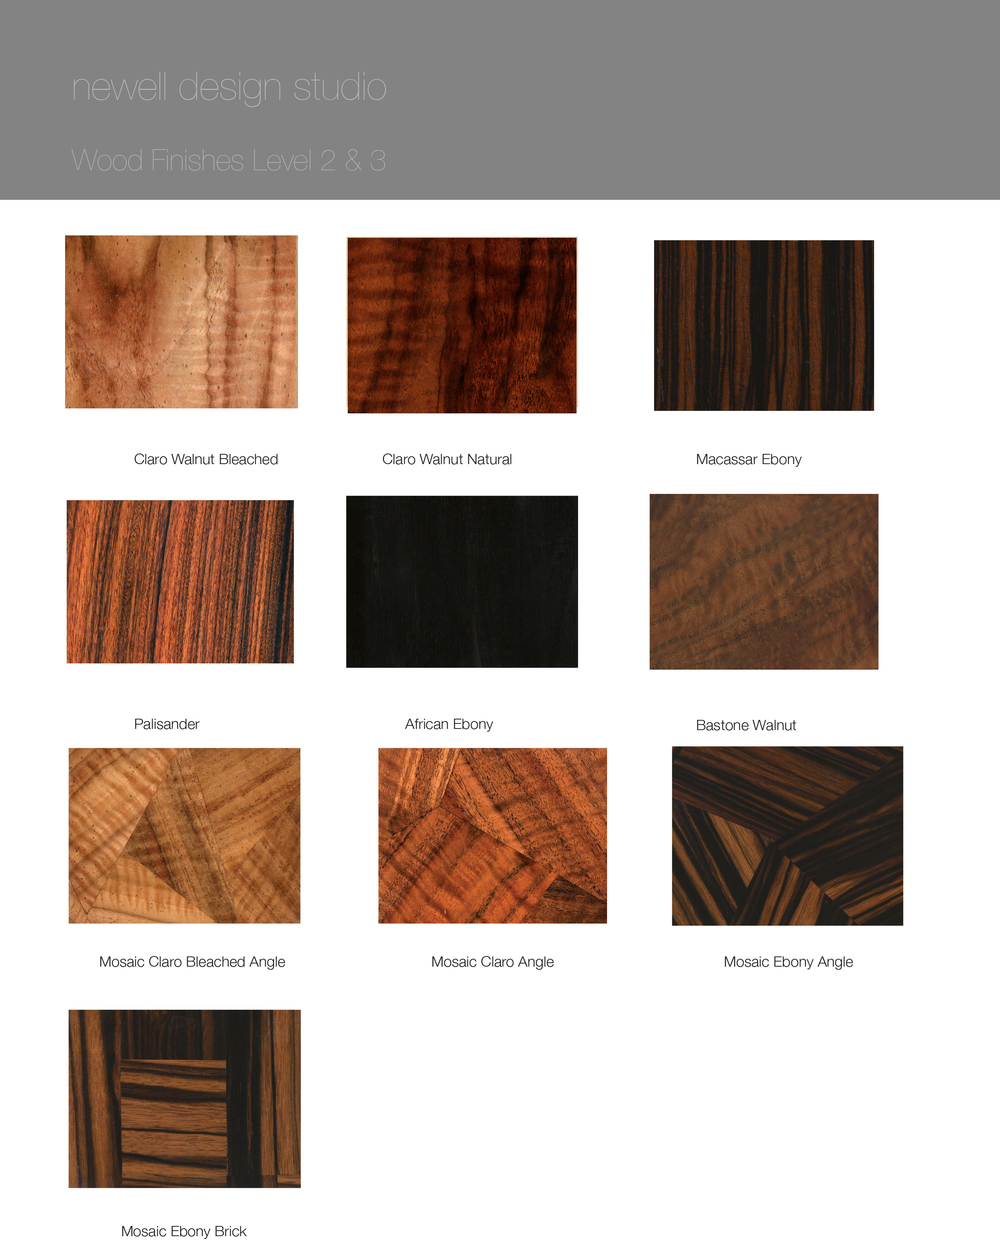 Wood Finishes Level 2 & 3.jpg